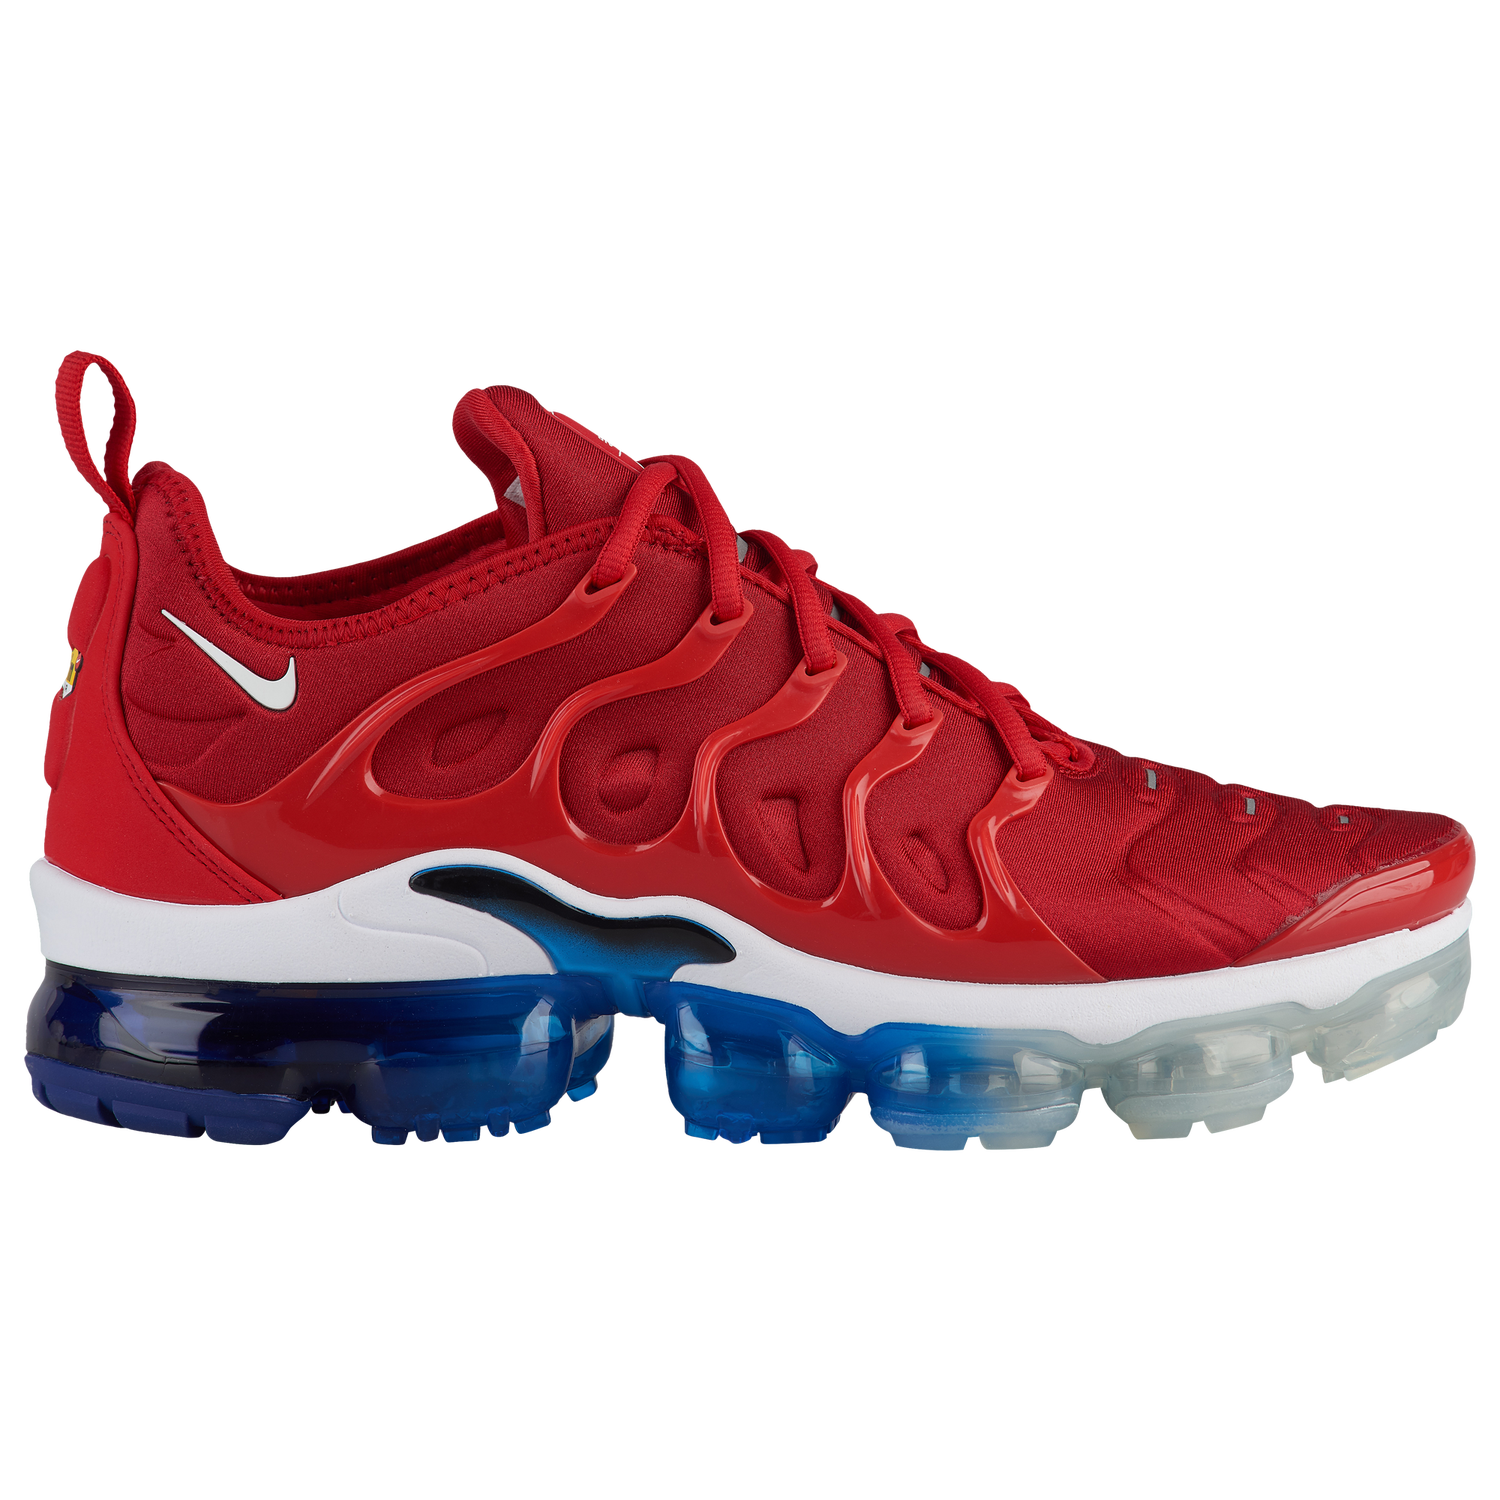 1babd4c5d89 new style nike air vapormax mens red white e2ff1 caf69